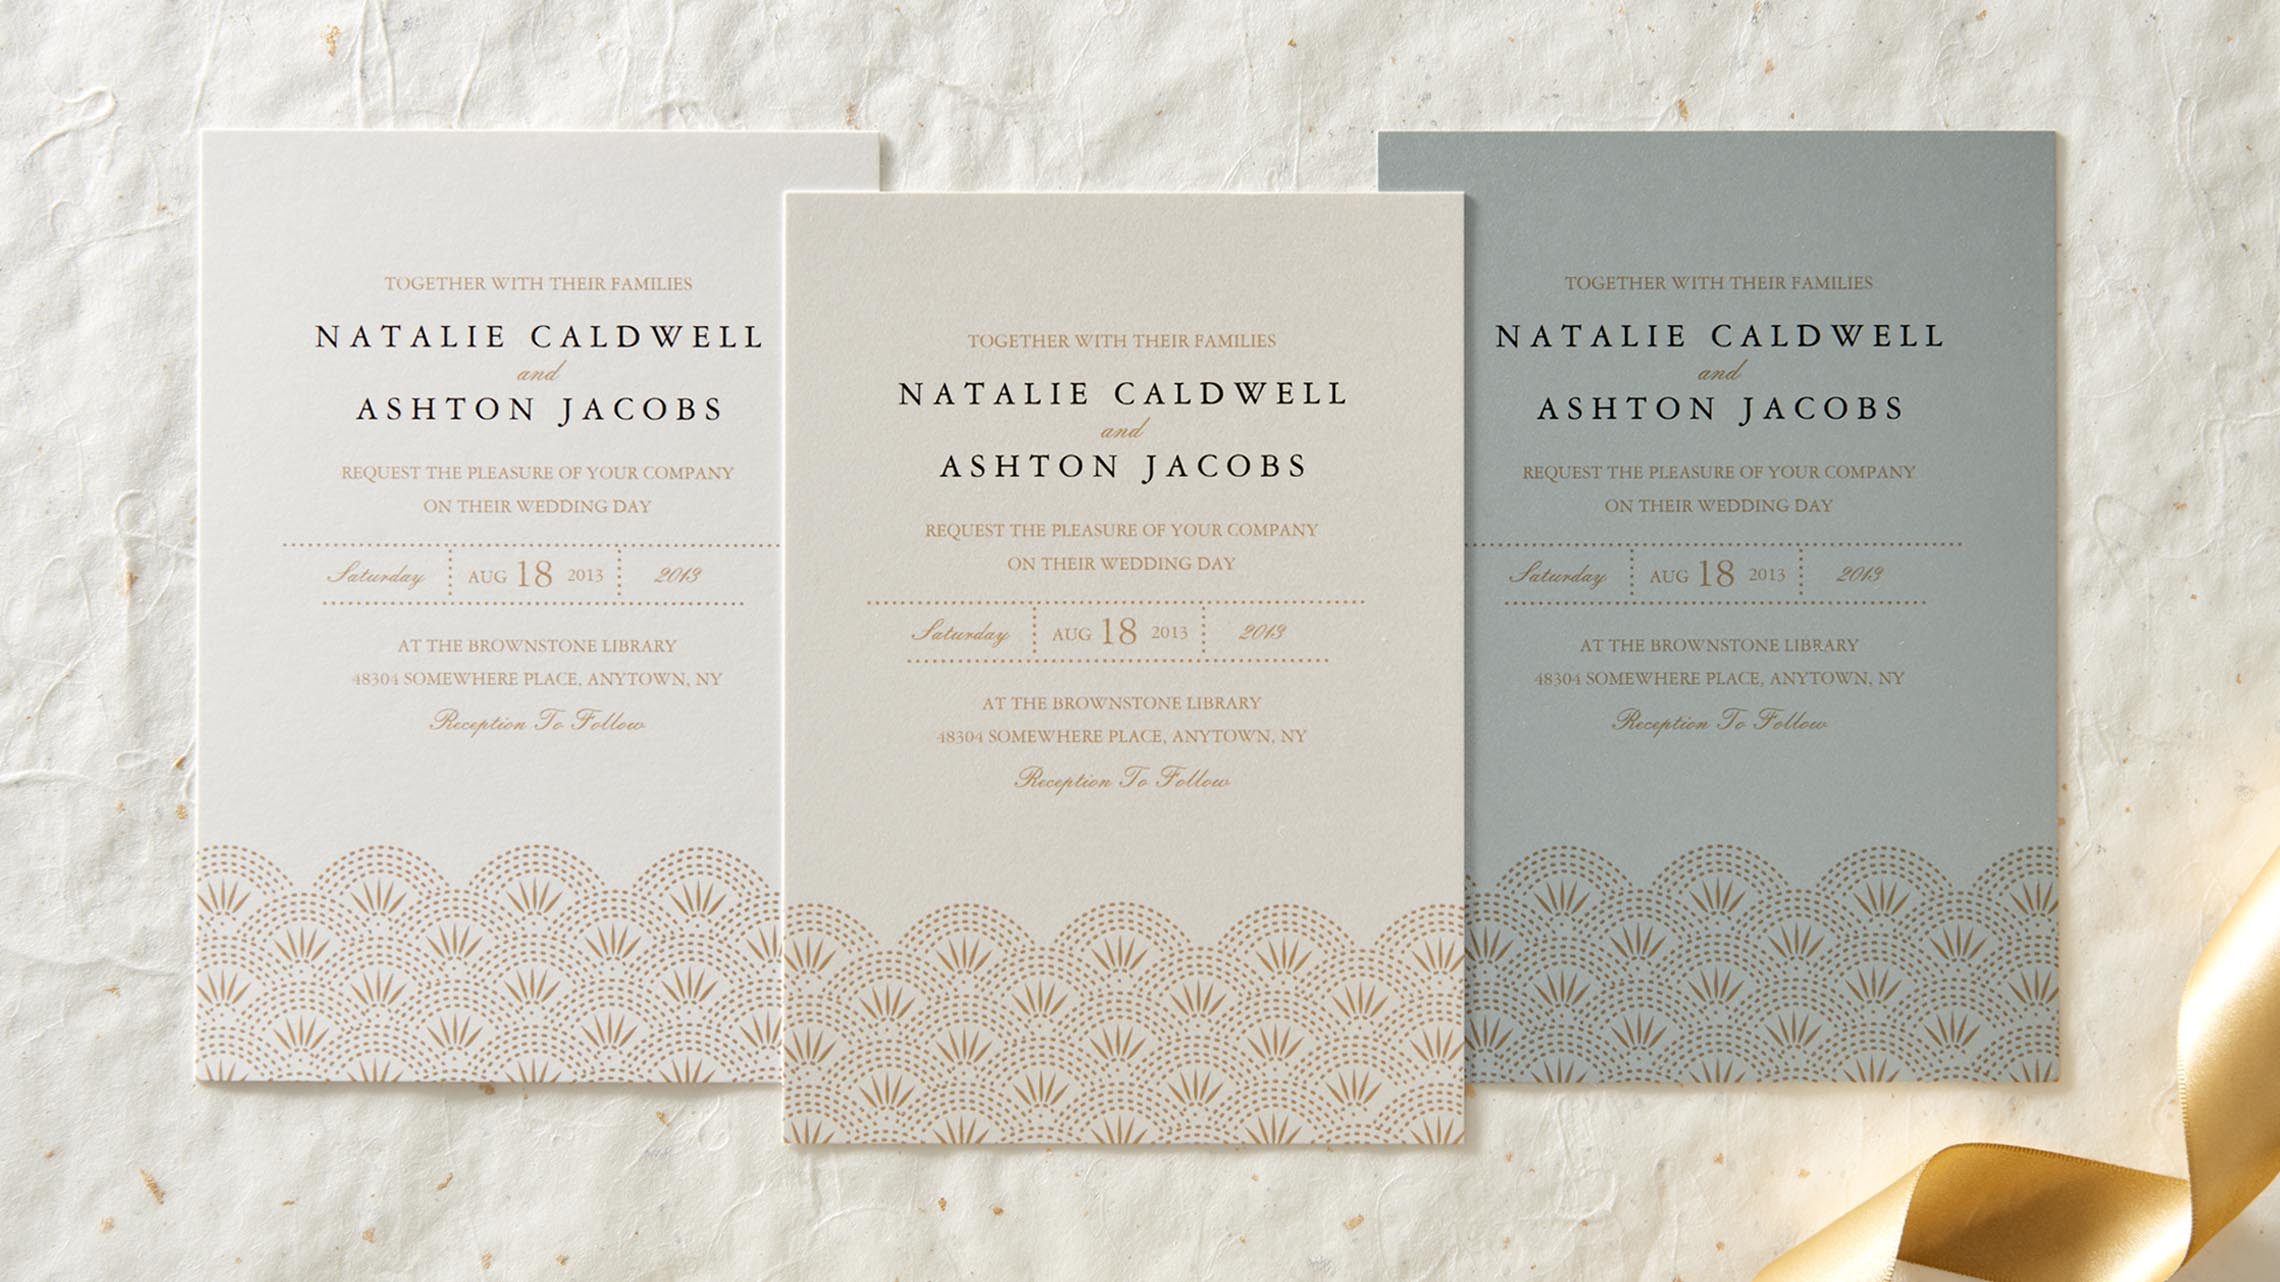 types of invitation paper Customize online and paper cards and invitations that reflect your personal style—for weddings, holidays, birthdays, and other important occasions.